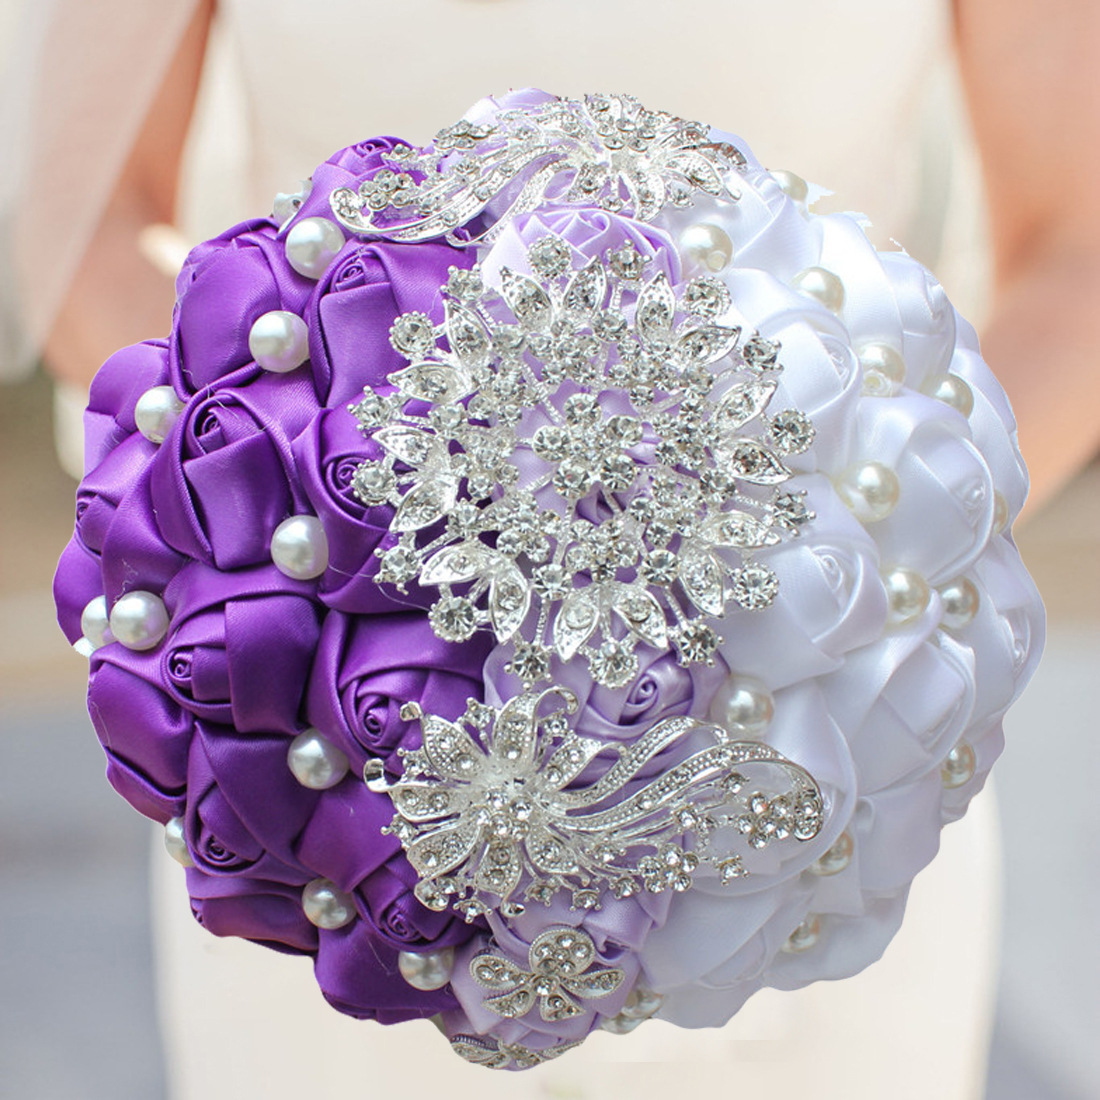 Wedding Flowers Website: Artificial Wedding Bouquets Handmade Ribbon White Purple